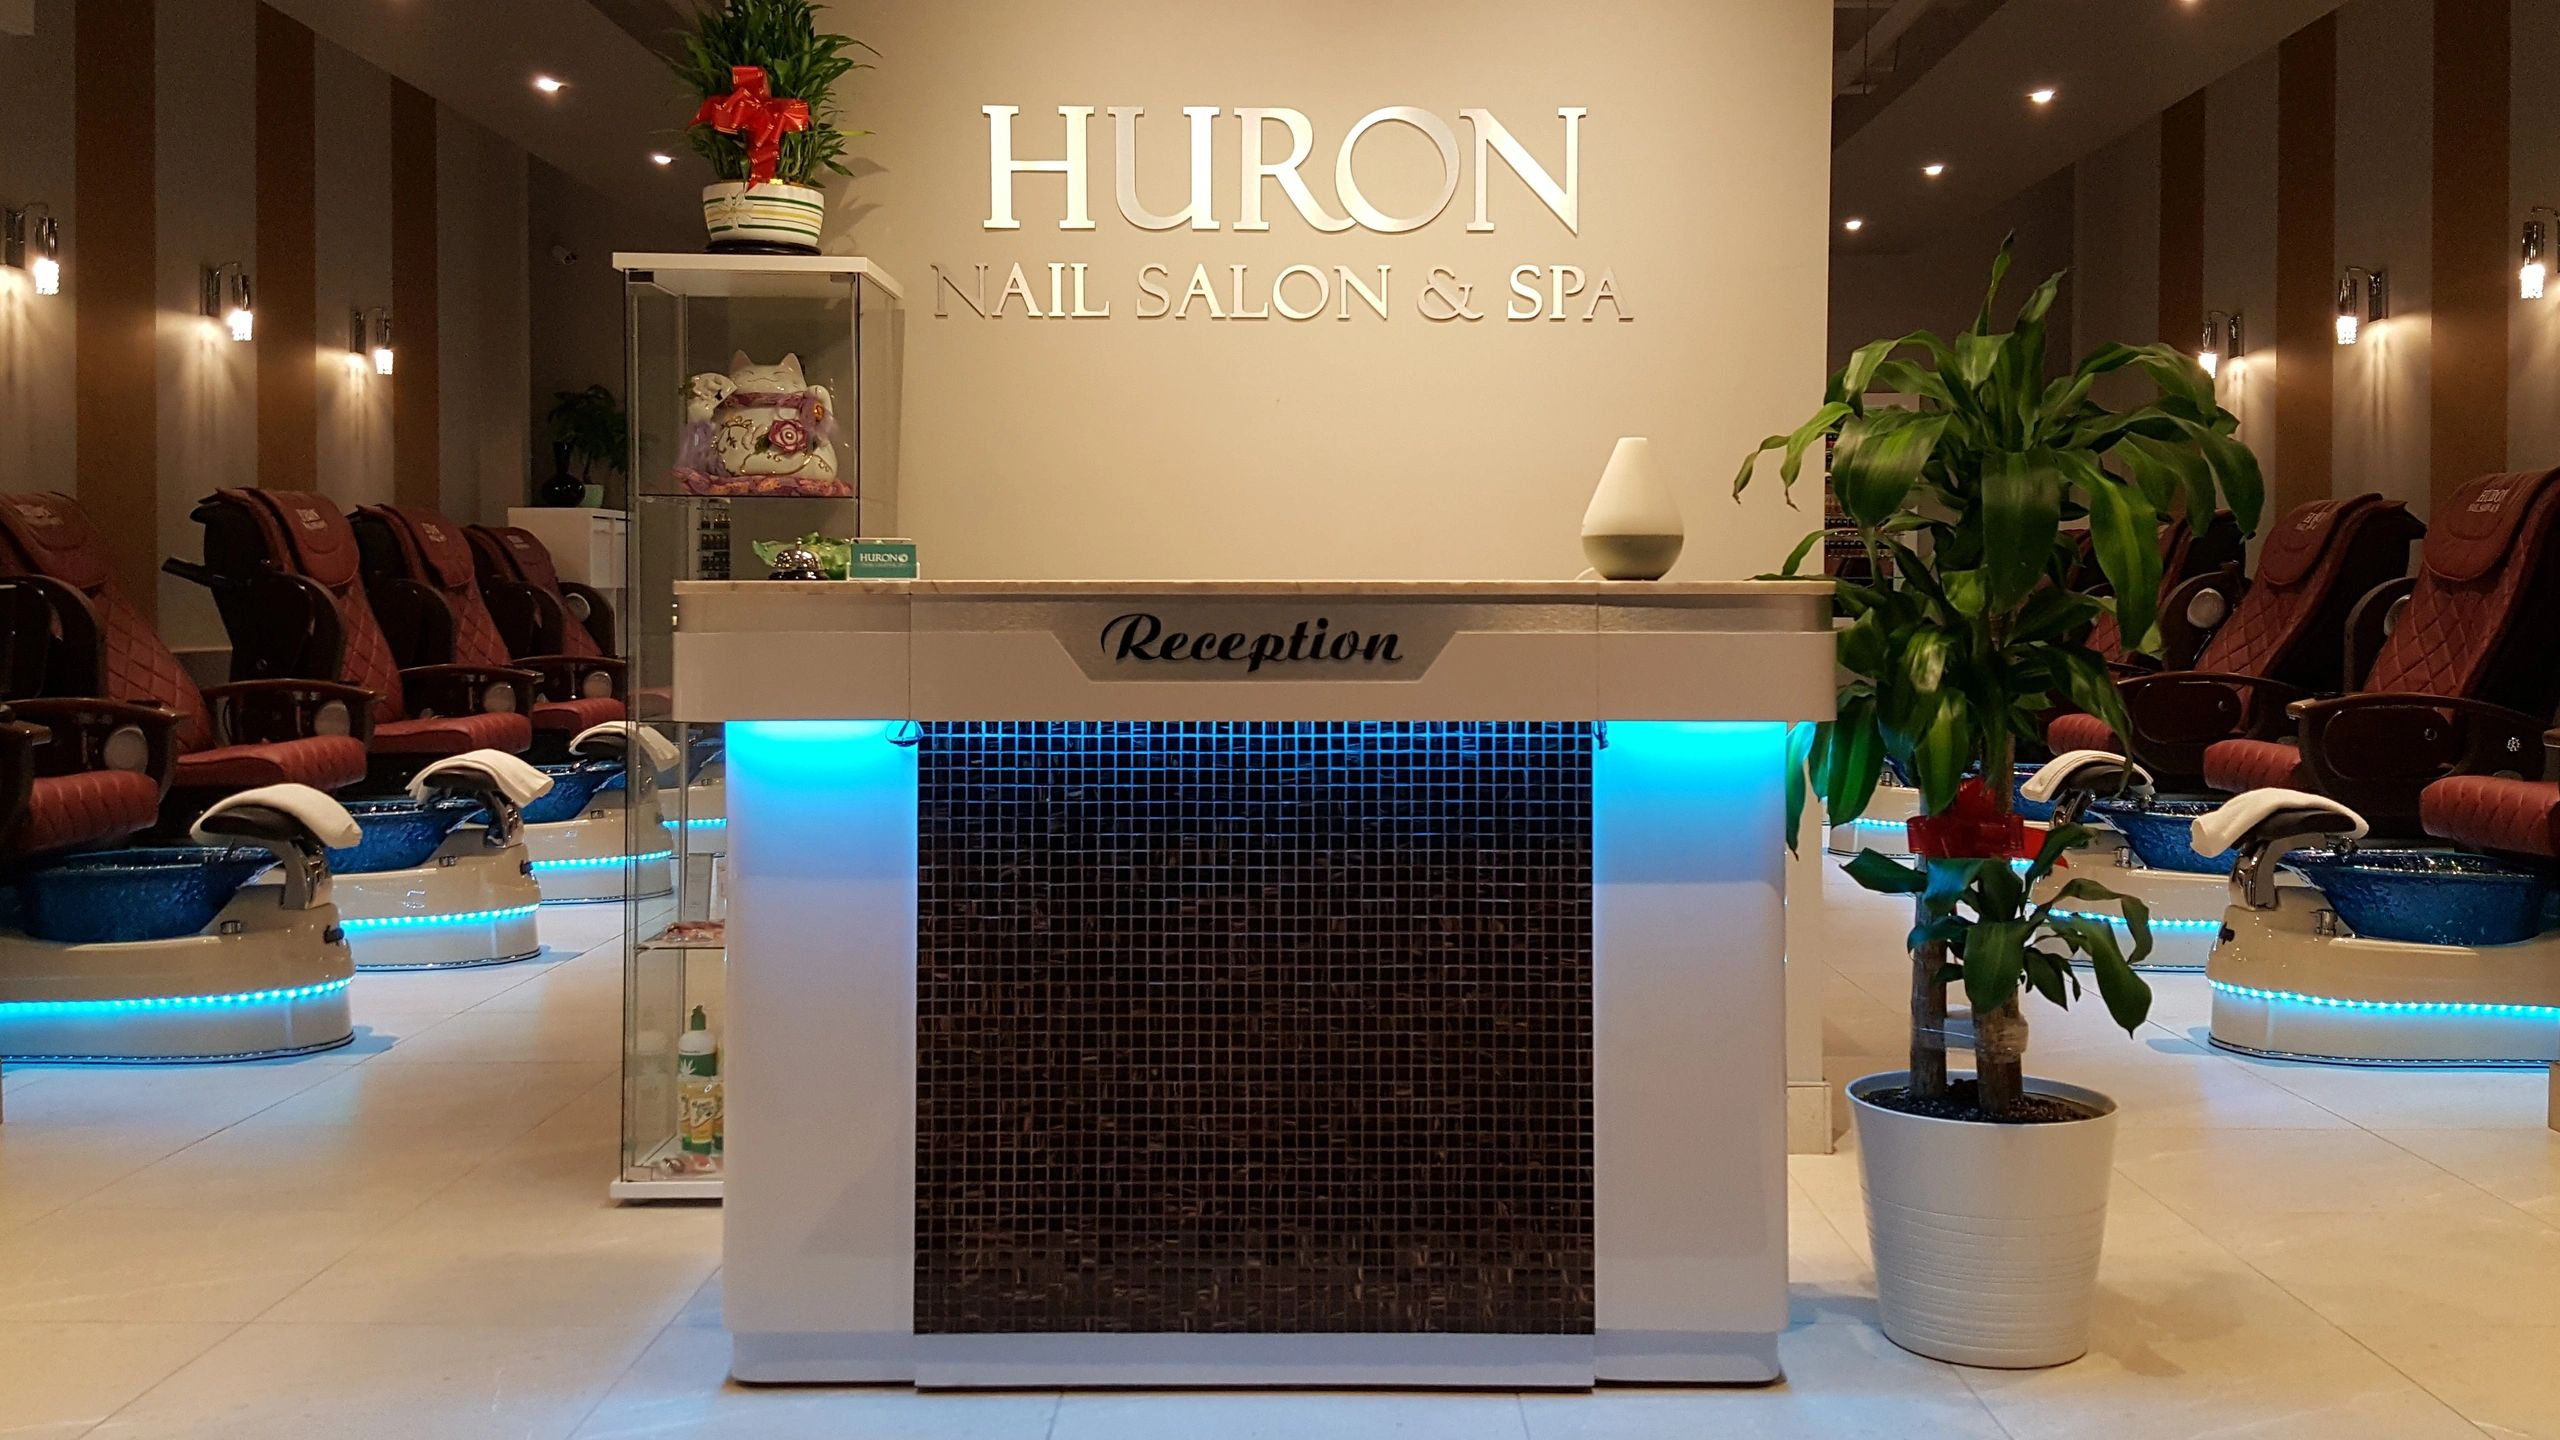 Best nail salon huron nail salon spa huron nail for 33 fingers salon reviews